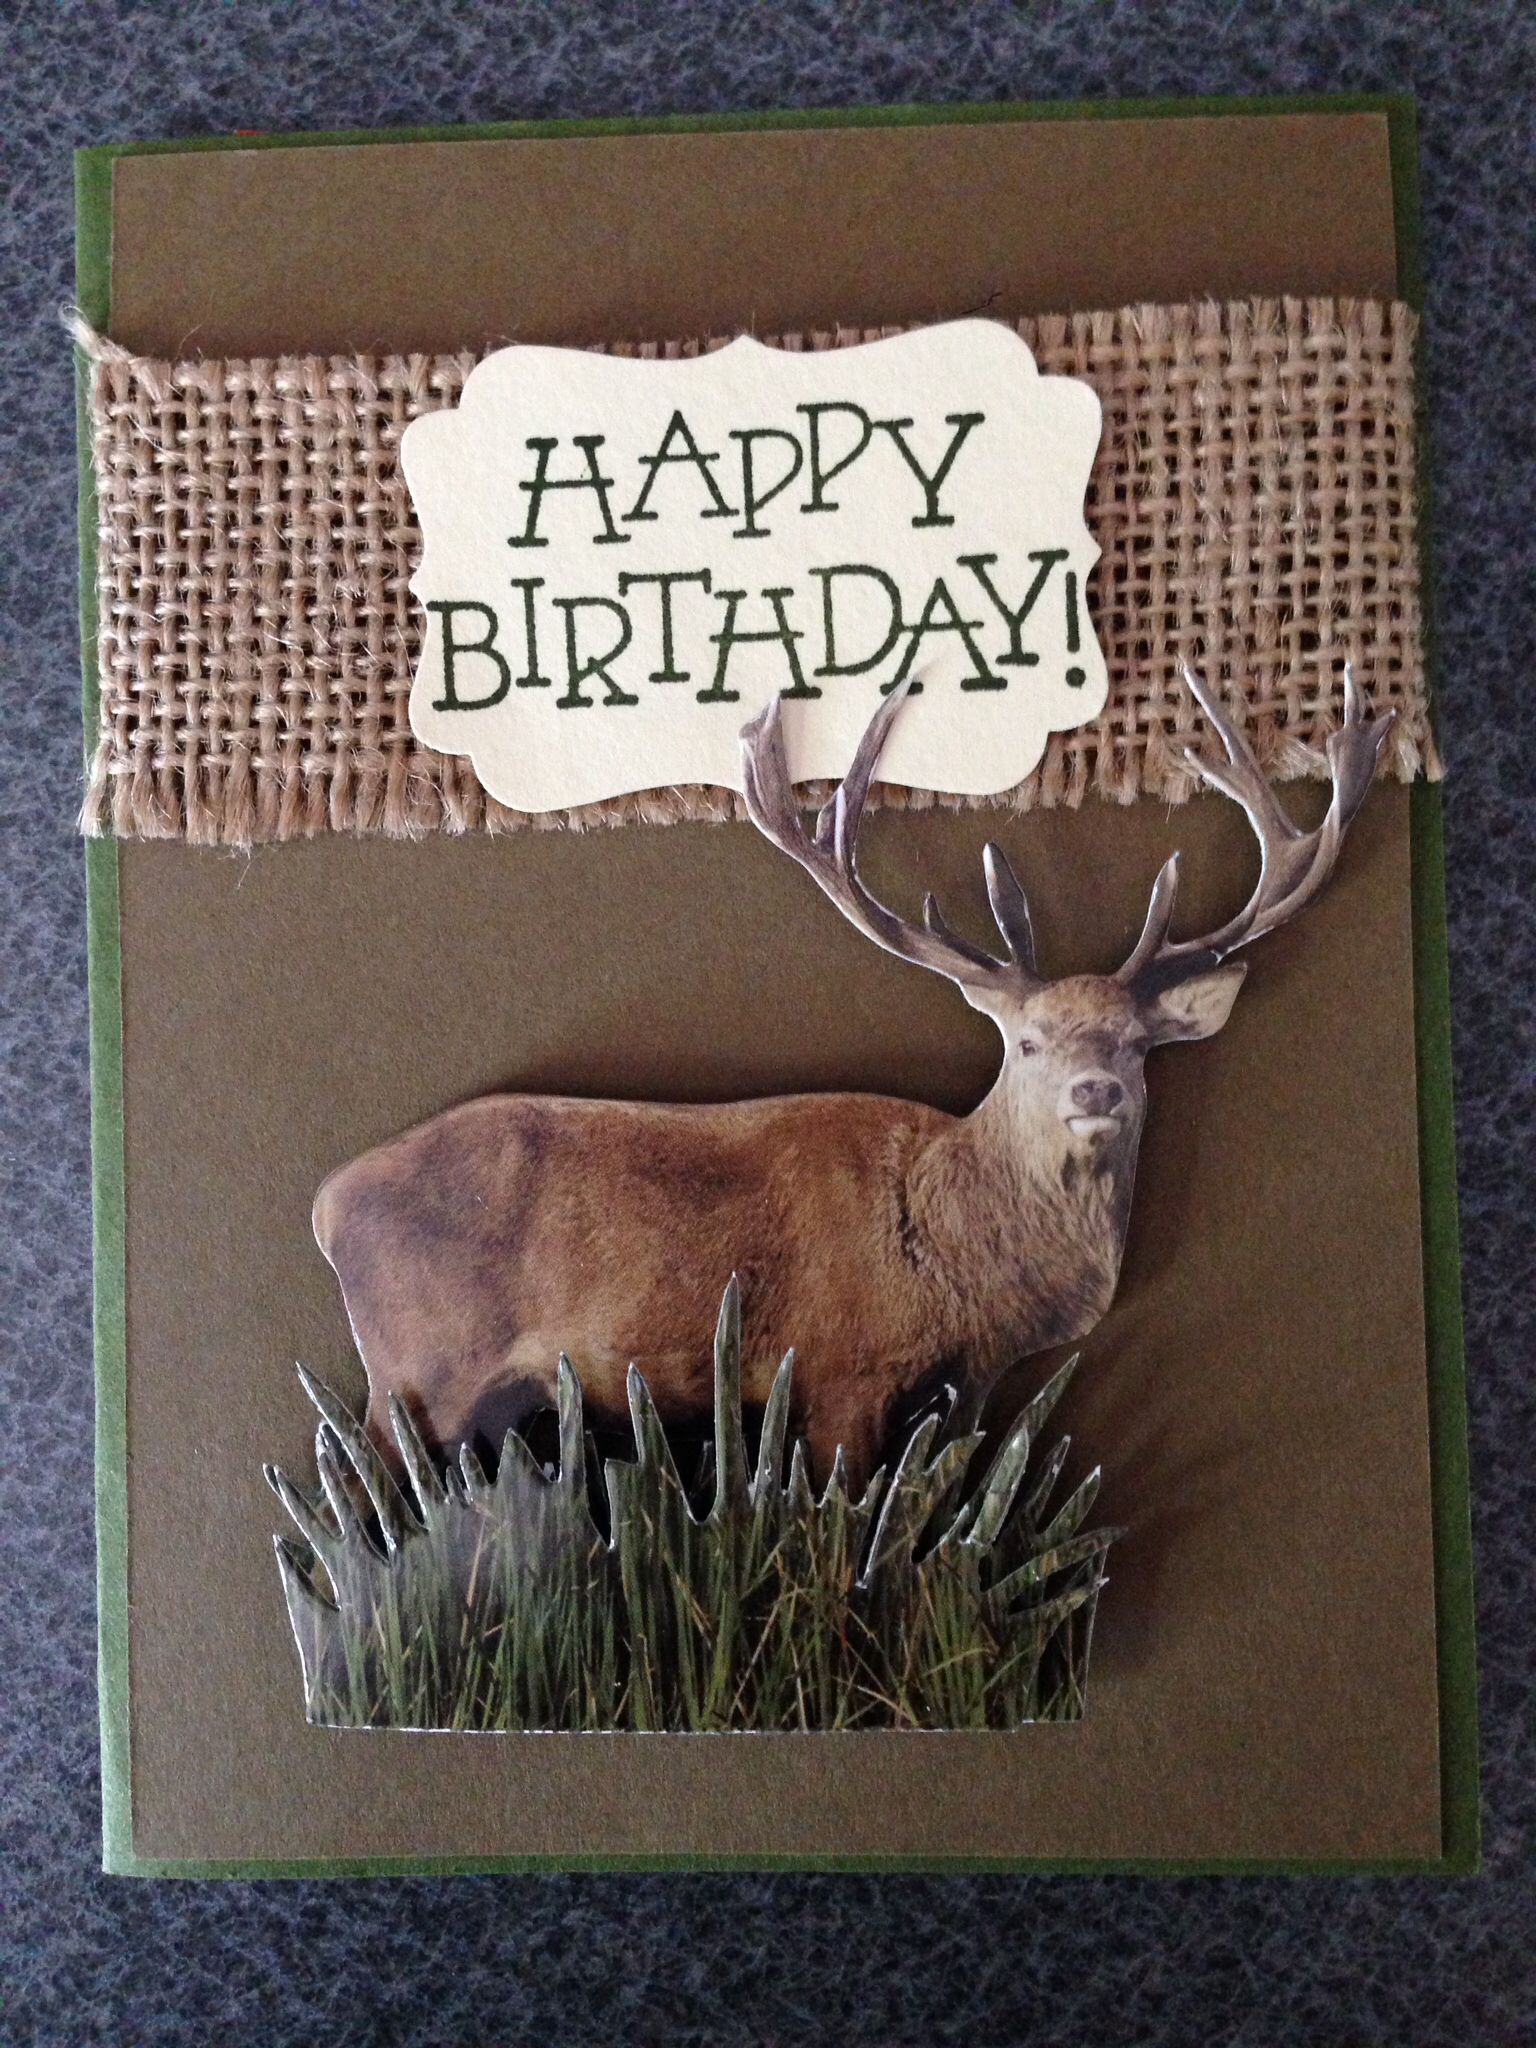 Happy Birthday Hunter : happy, birthday, hunter, Birthday, Hunter, Greetings,, Happy, Wishes,, Cards